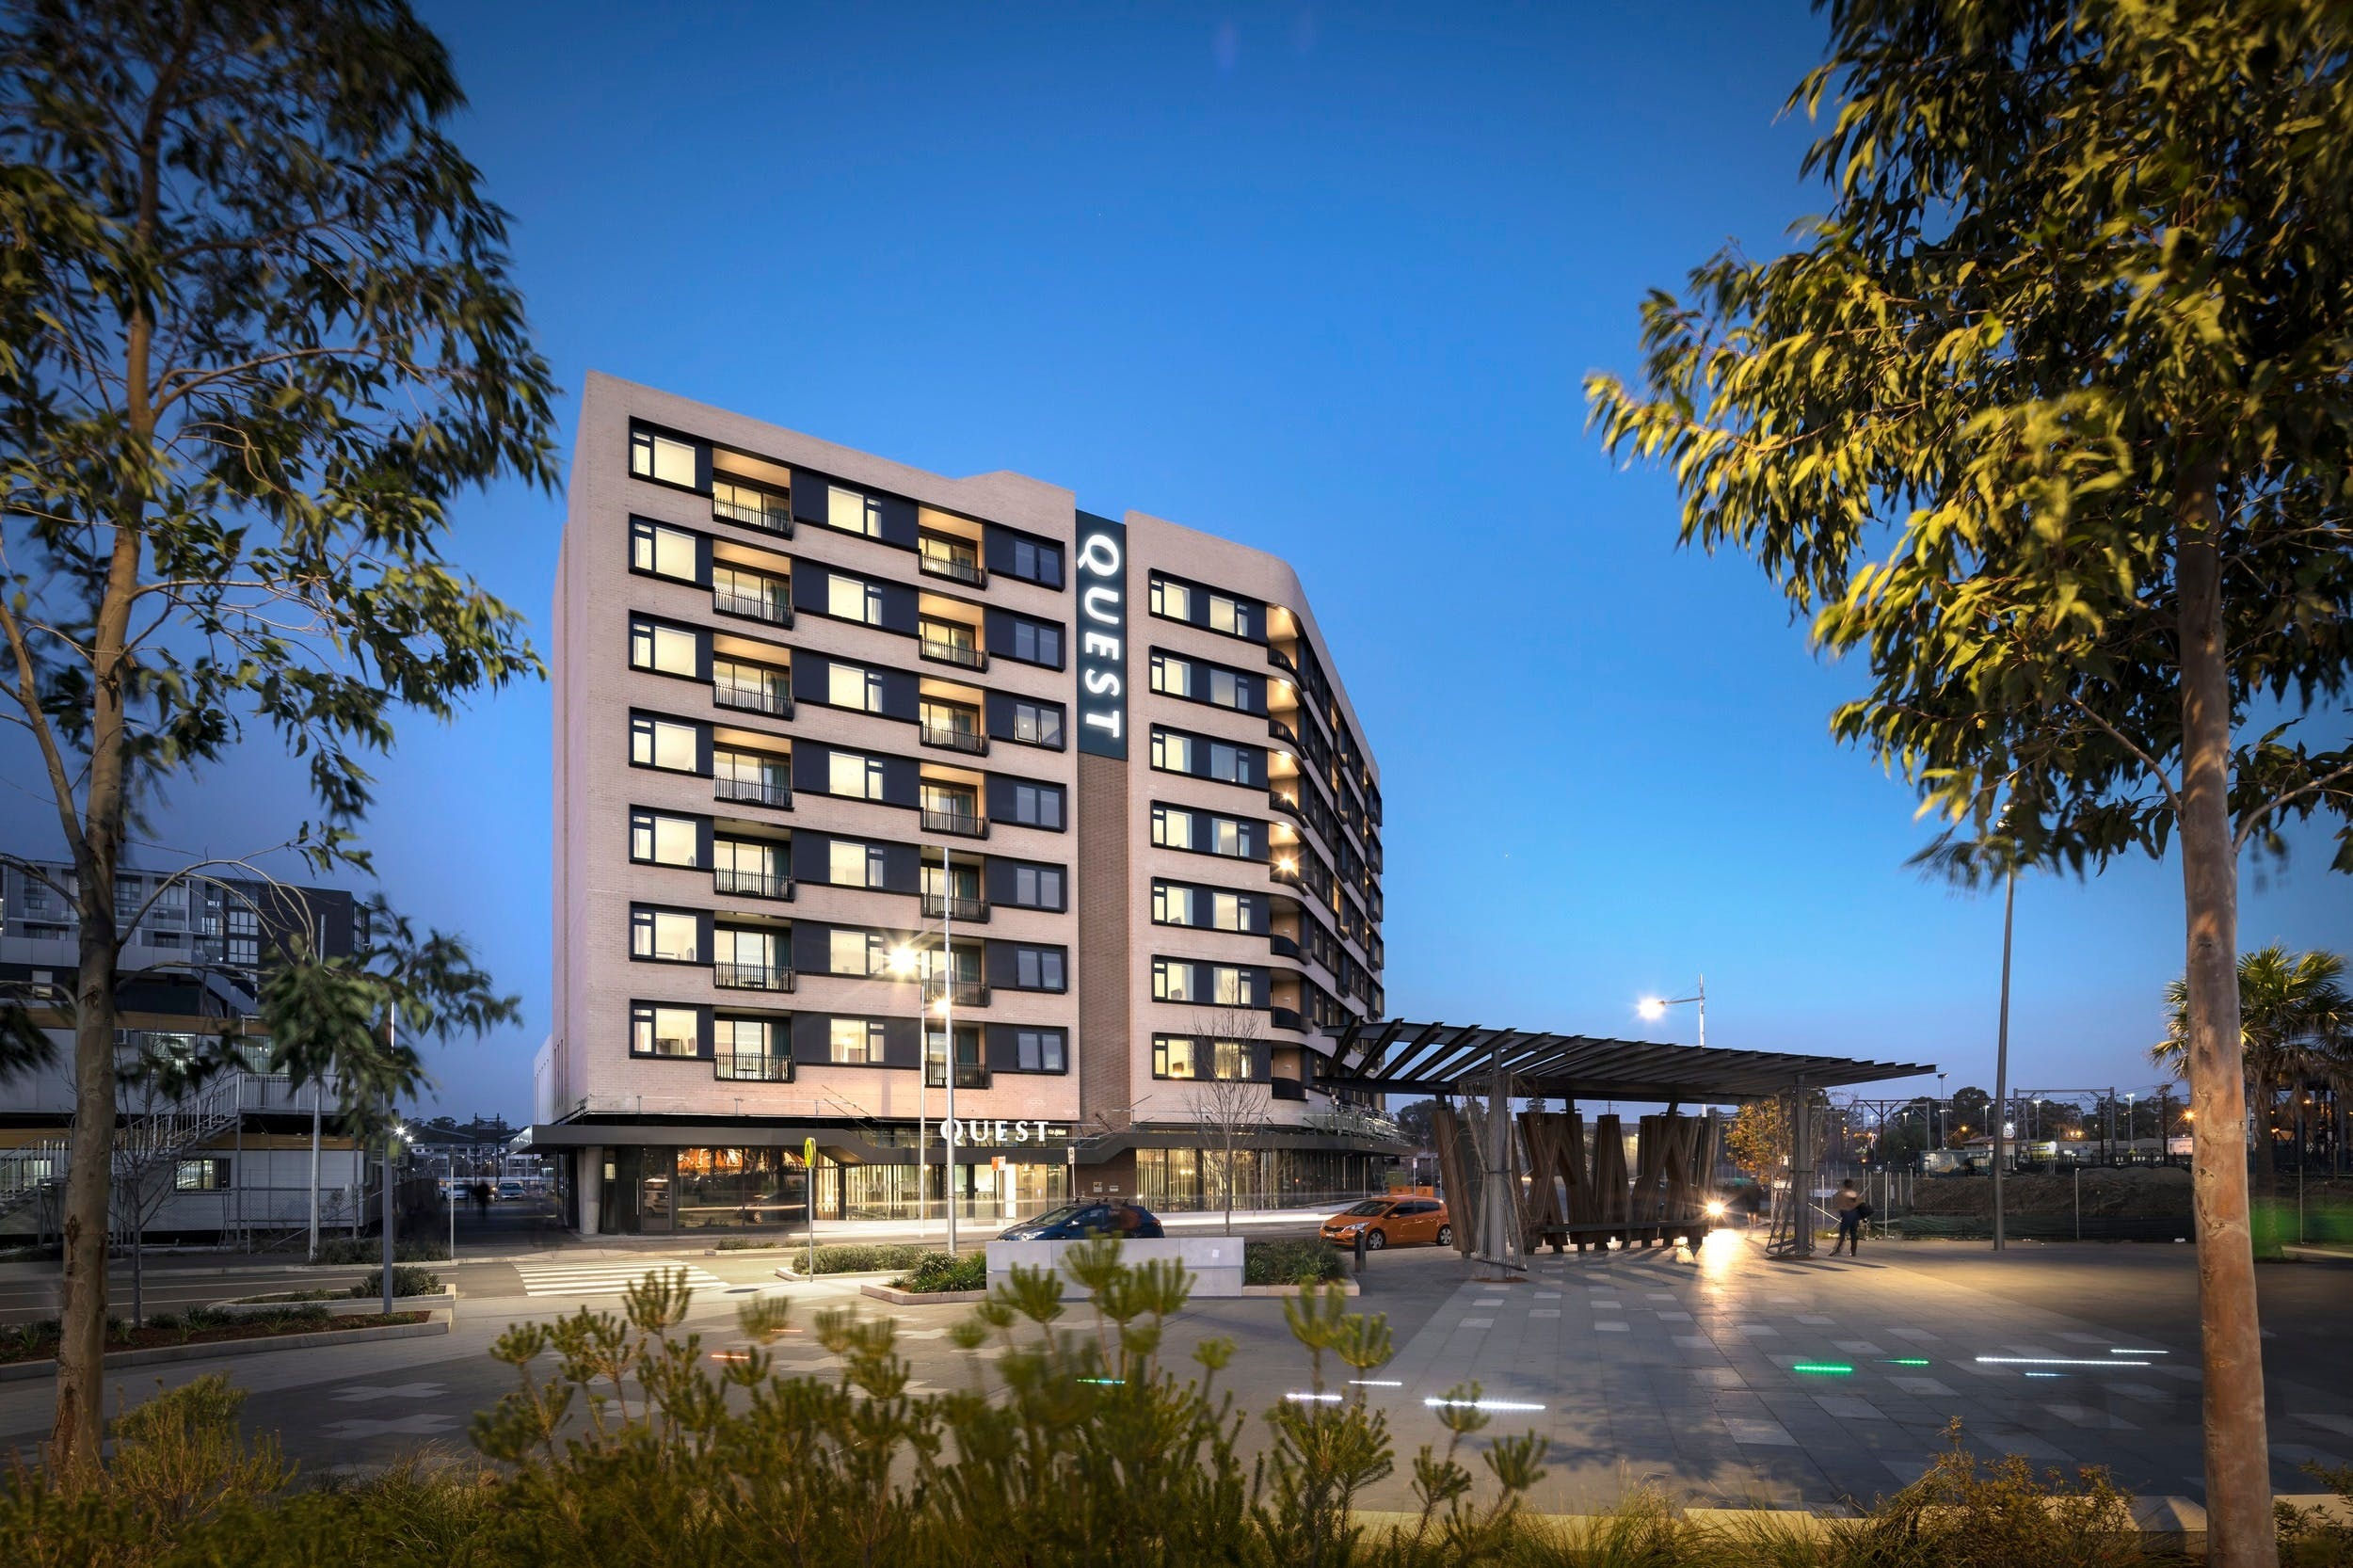 Quest Penrith - St Kilda Accommodation